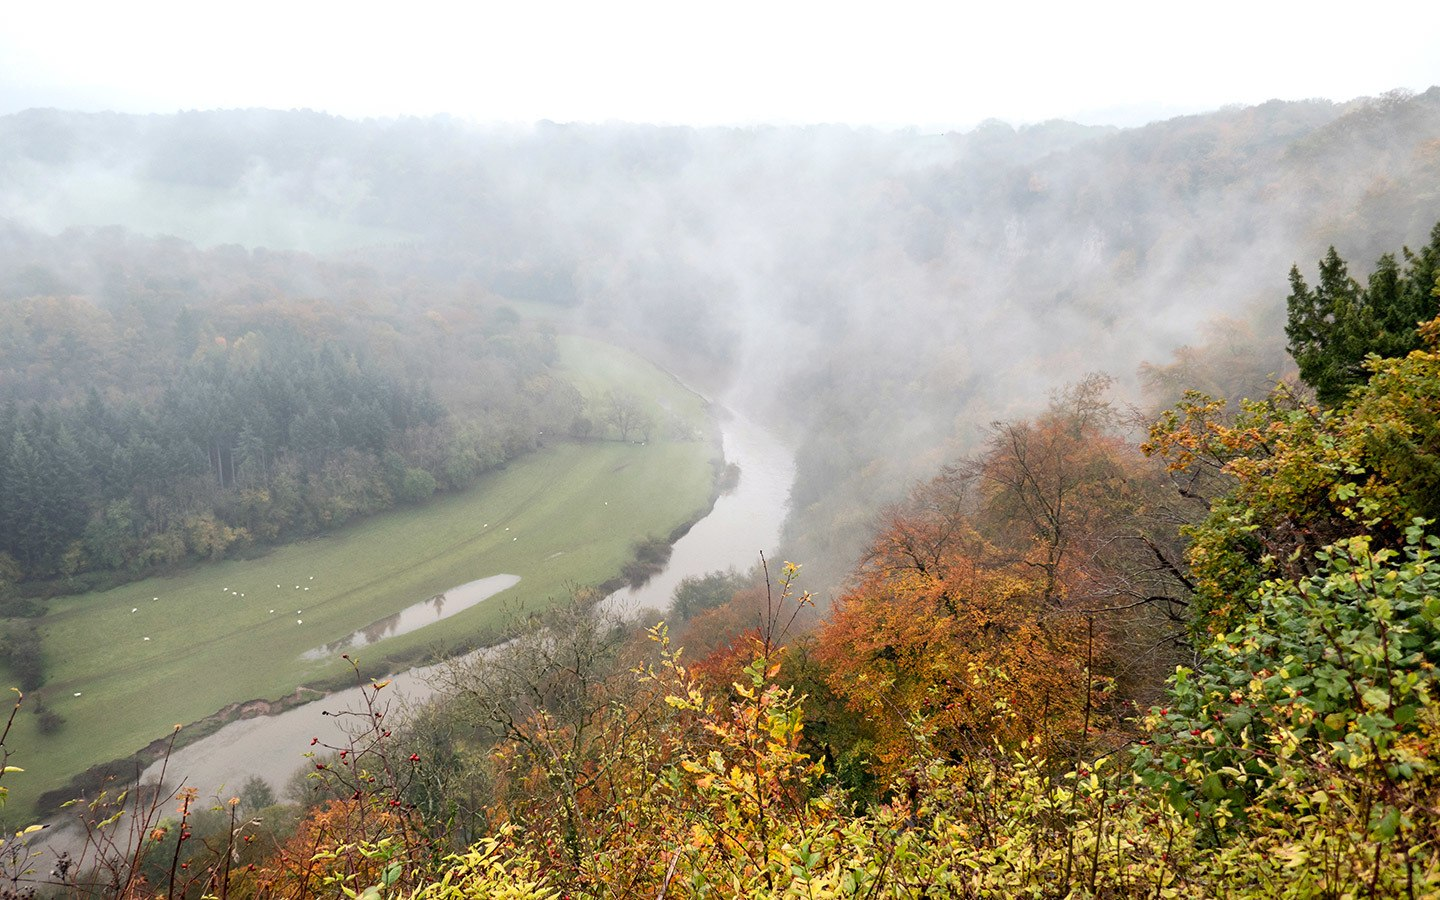 Symonds Yat Rock viewpoint in the Wye Valley